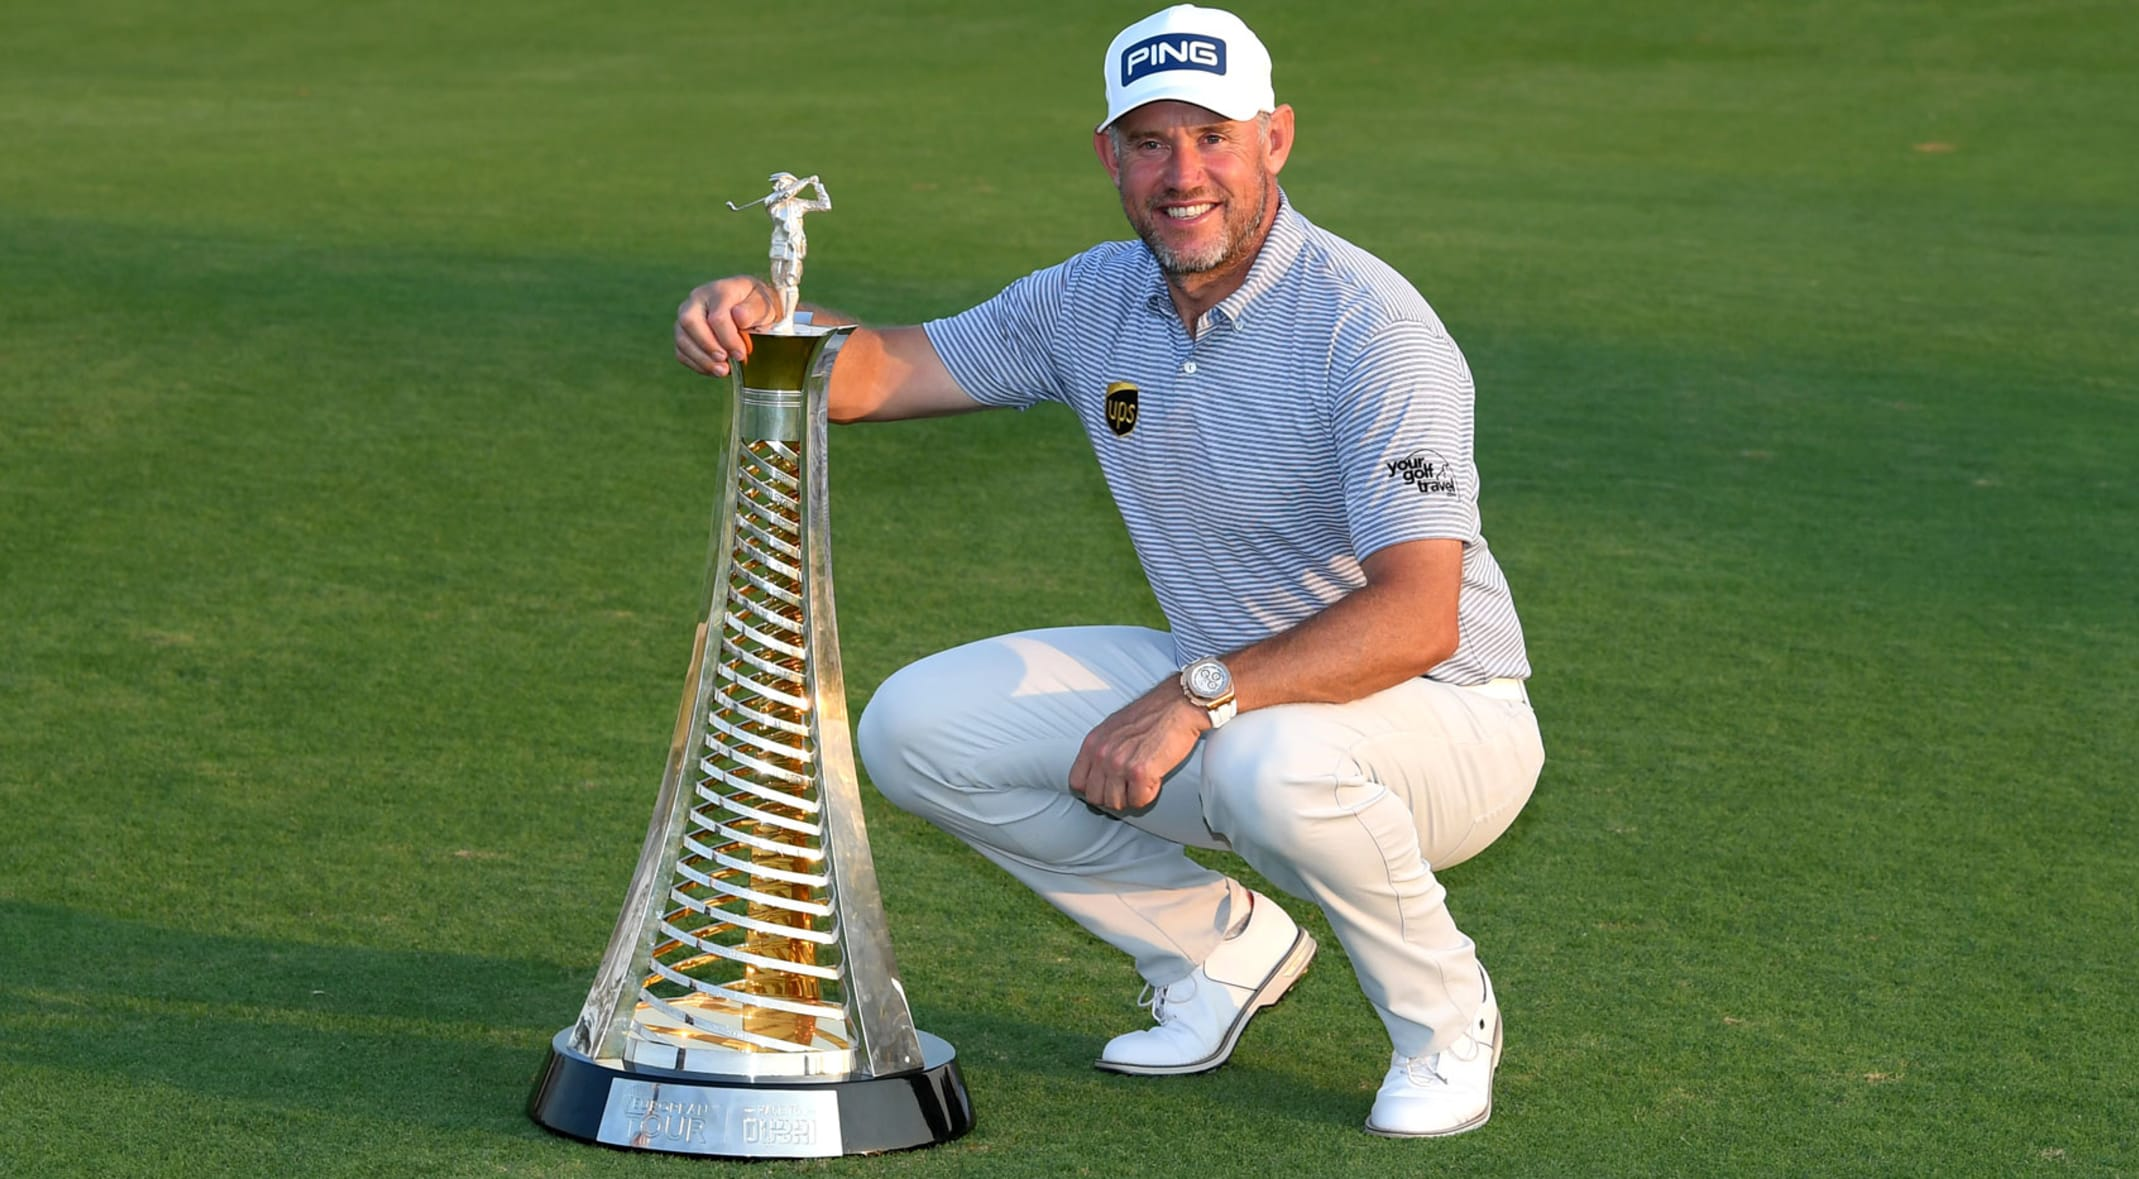 2020 Race to Dubai champion Lee Westwood